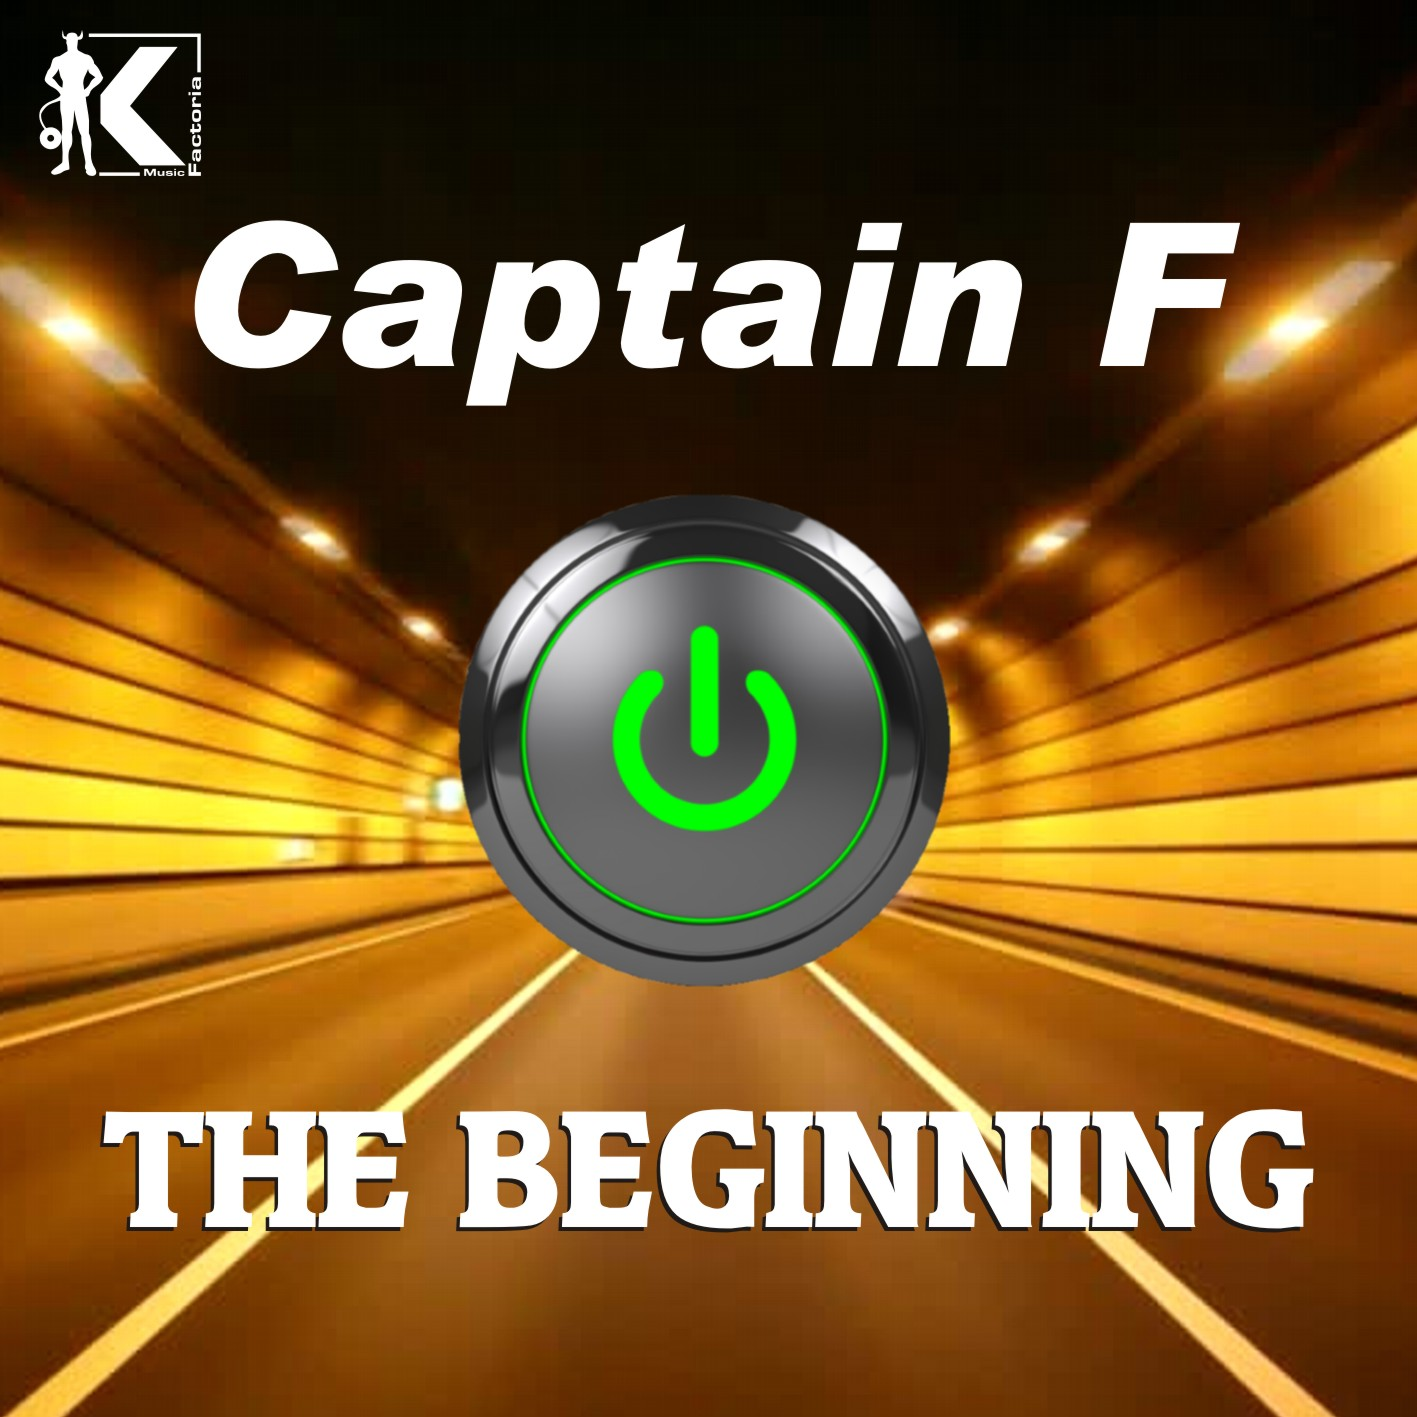 Captain F - The Beginning